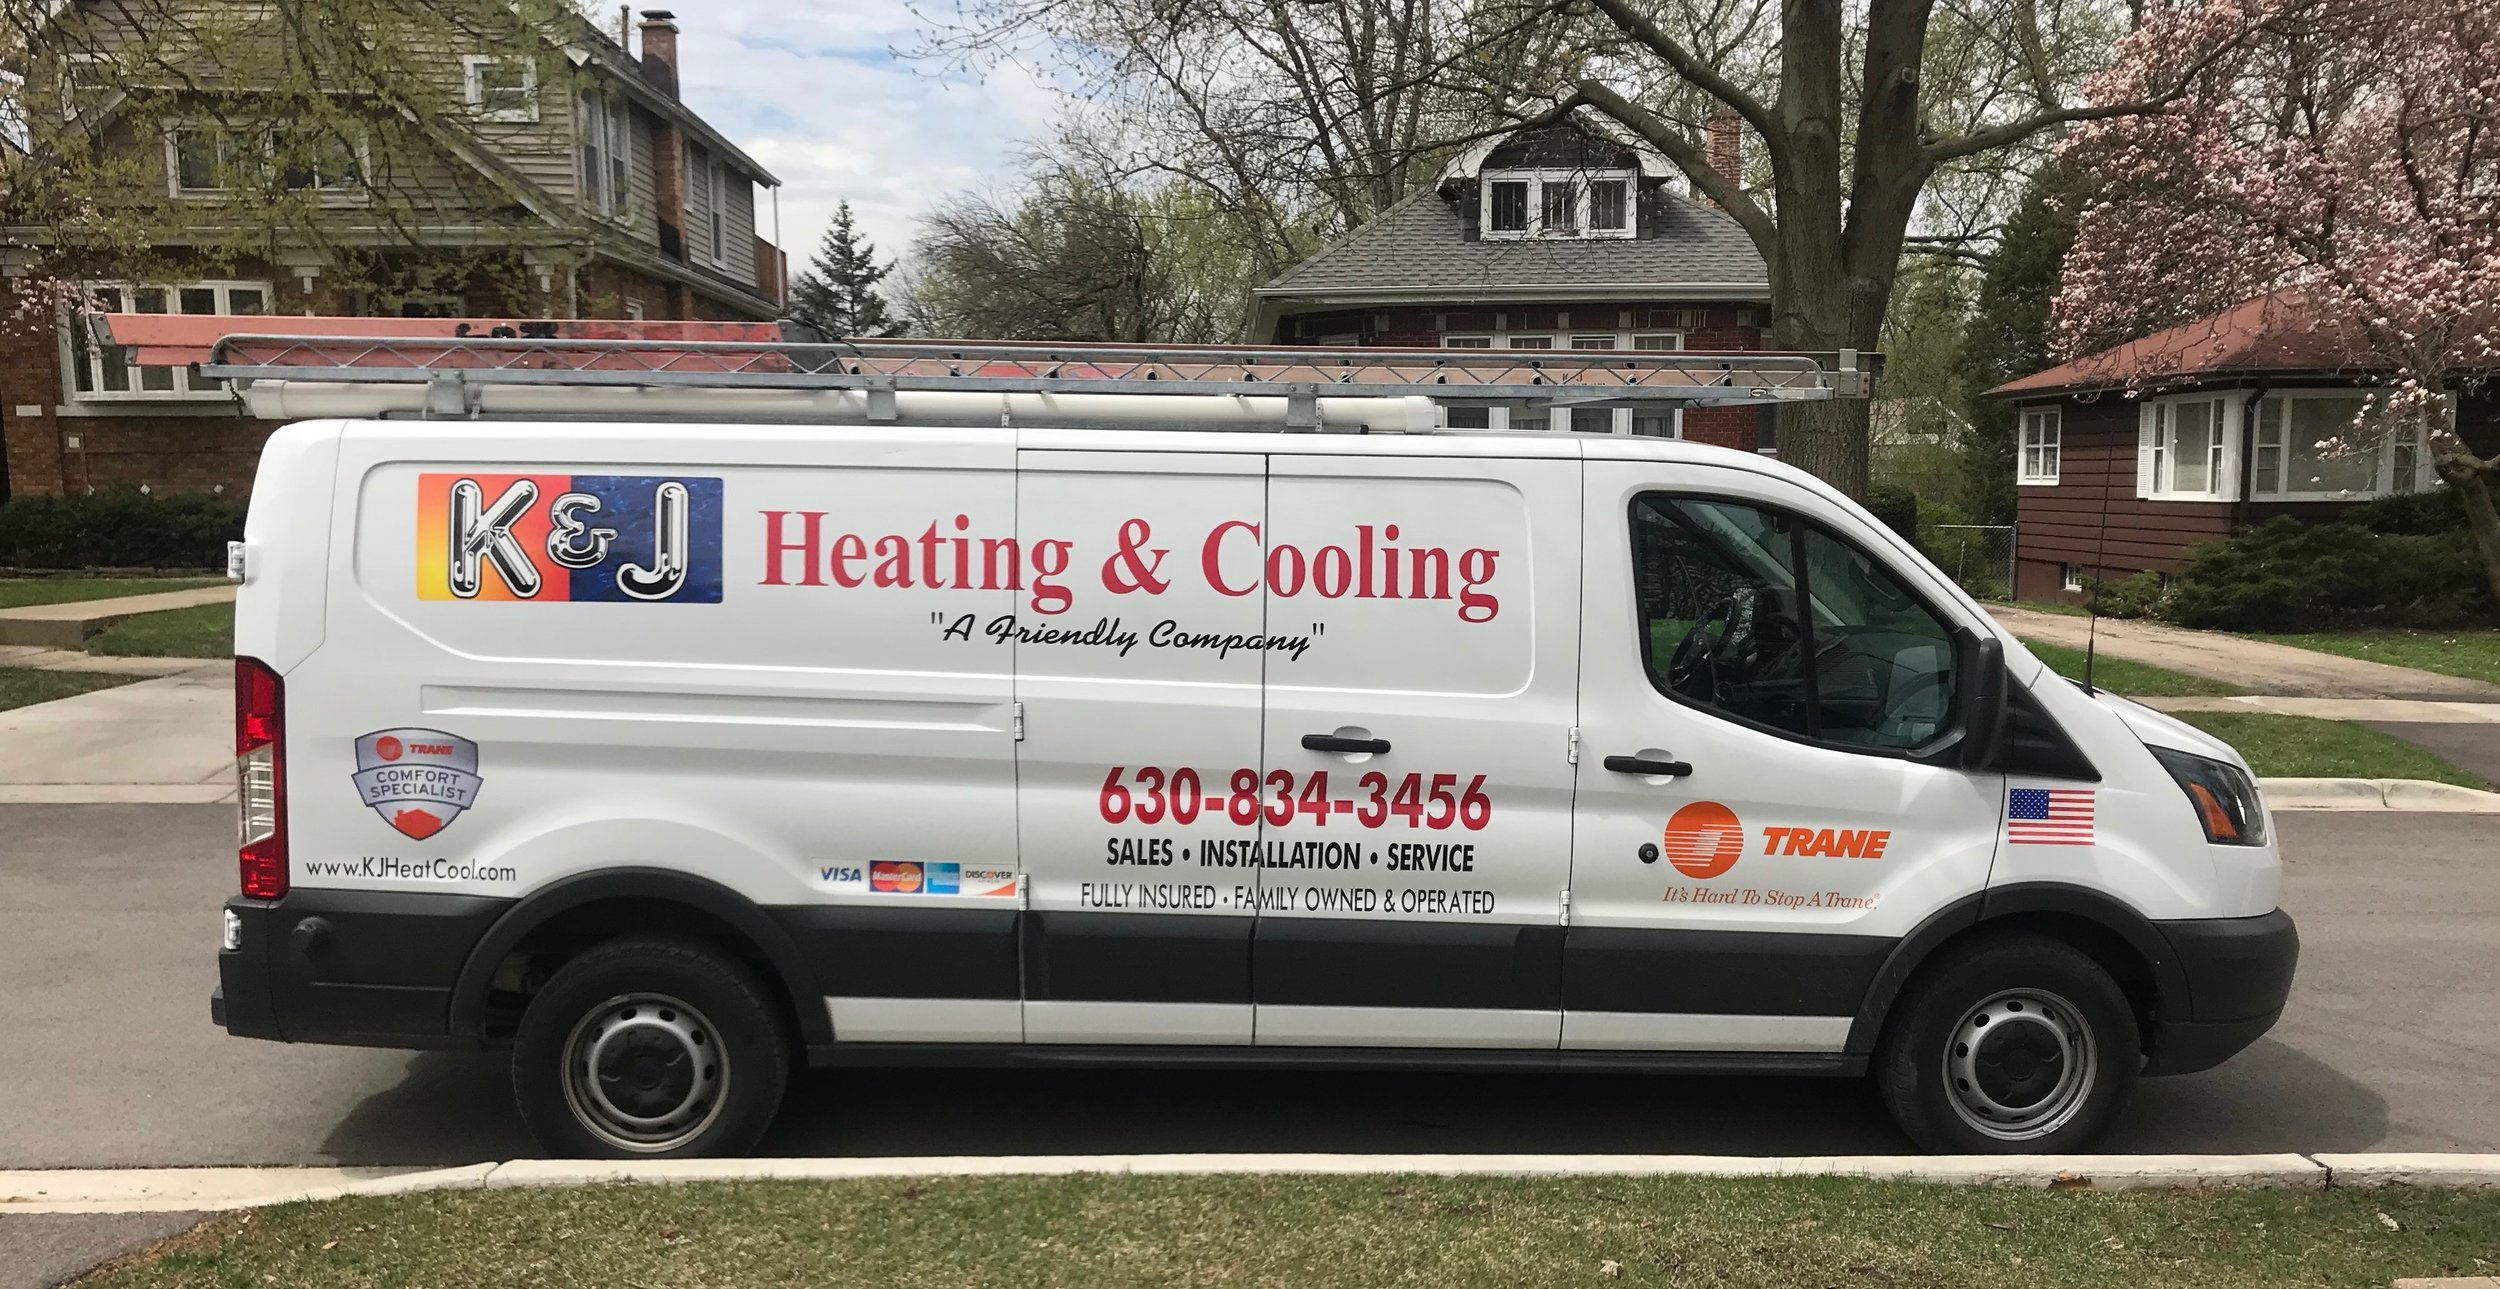 K & J Heating and Cooling, Inc. Service Van Stocked with Parts to Install a New Furnace and ACRight. Repair Your Furnace and AC Fast.